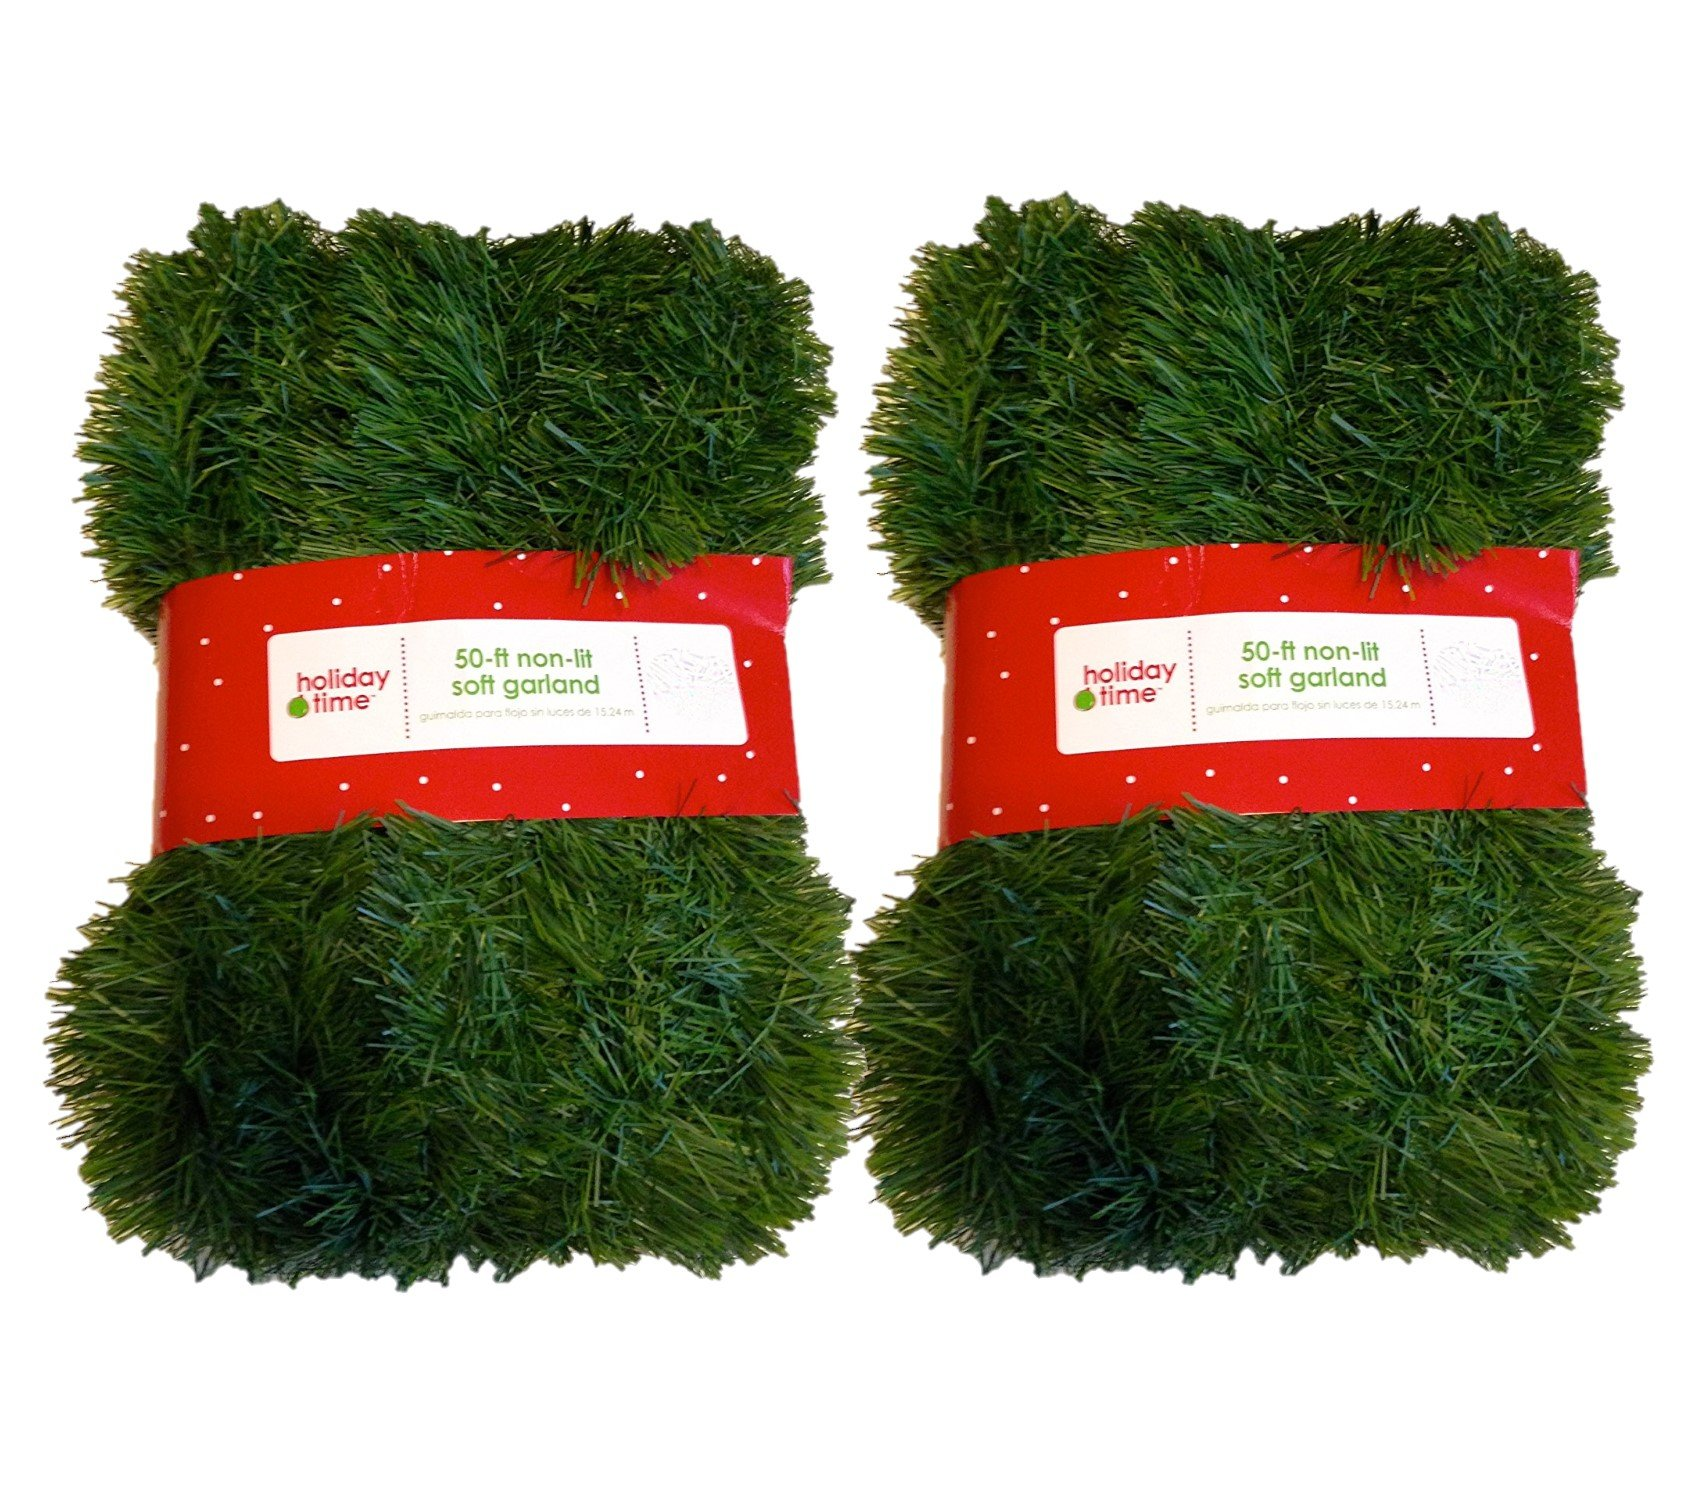 Holiday Time 50 Foot Non-Lit Green Holiday Soft Garland (Pack of 2)